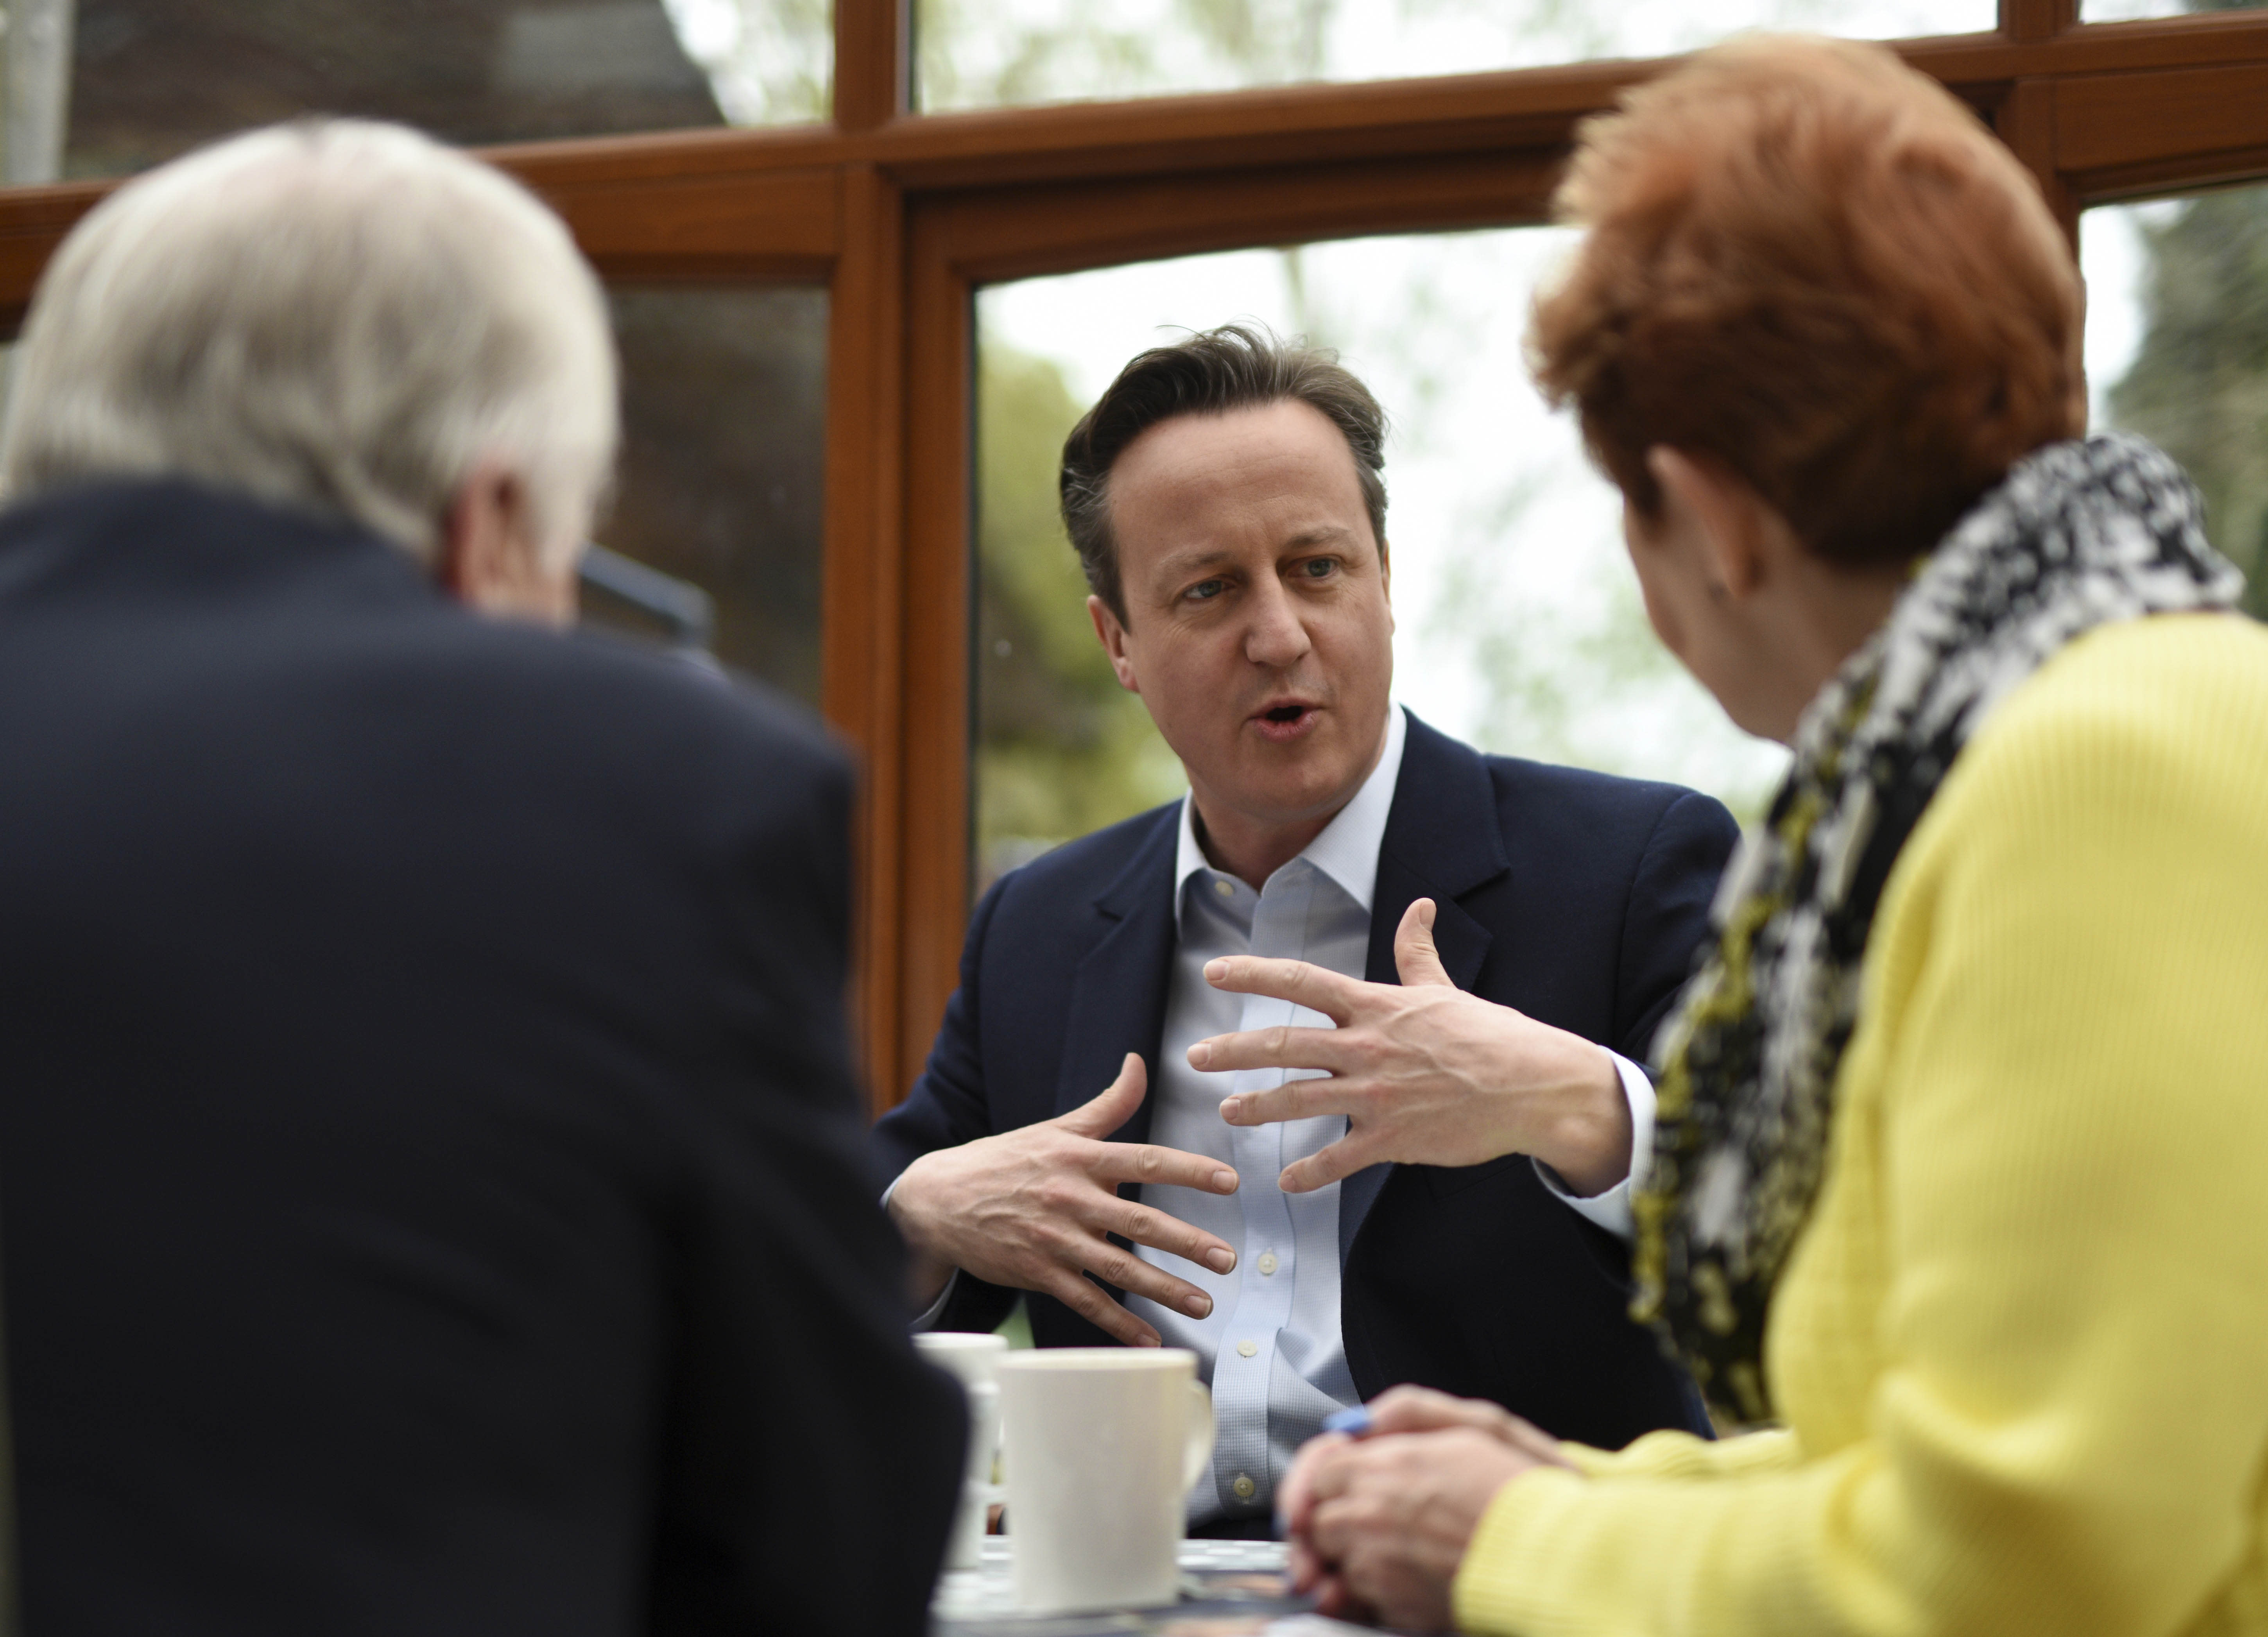 Should Britain stay in the EU? Question hovers in election